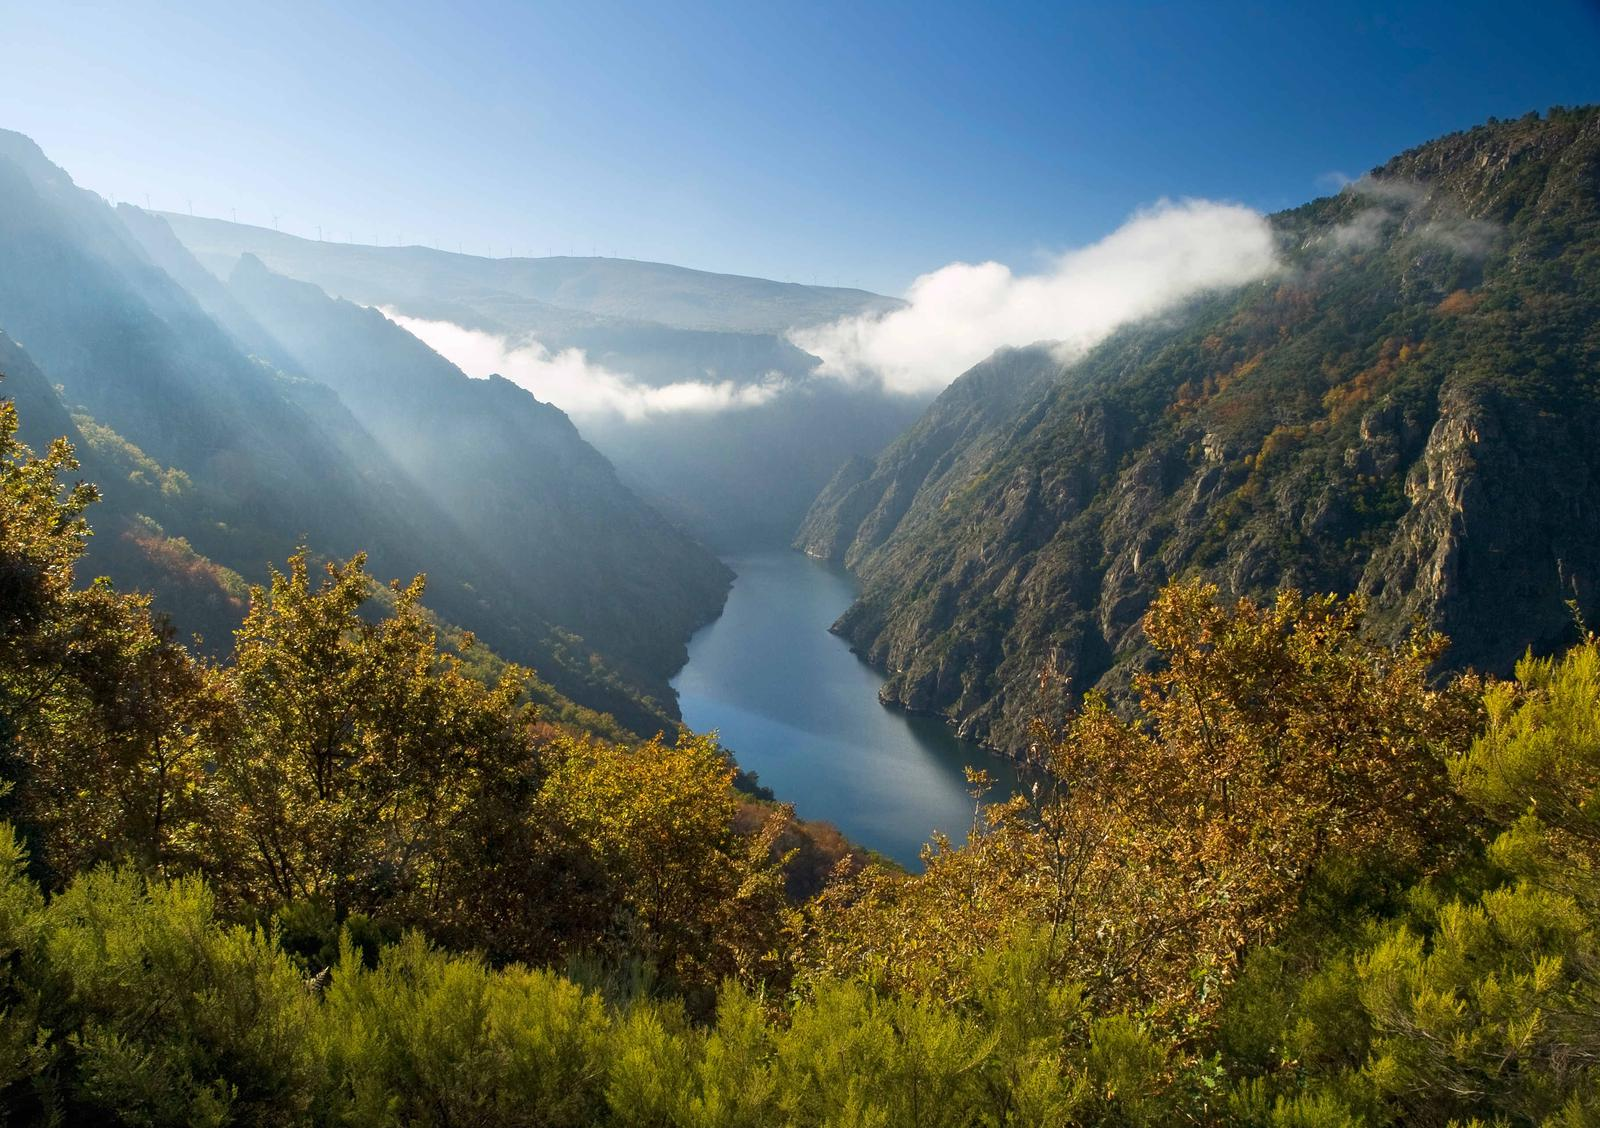 Spain_Galicia_Ourense_Sil River_Fotolia